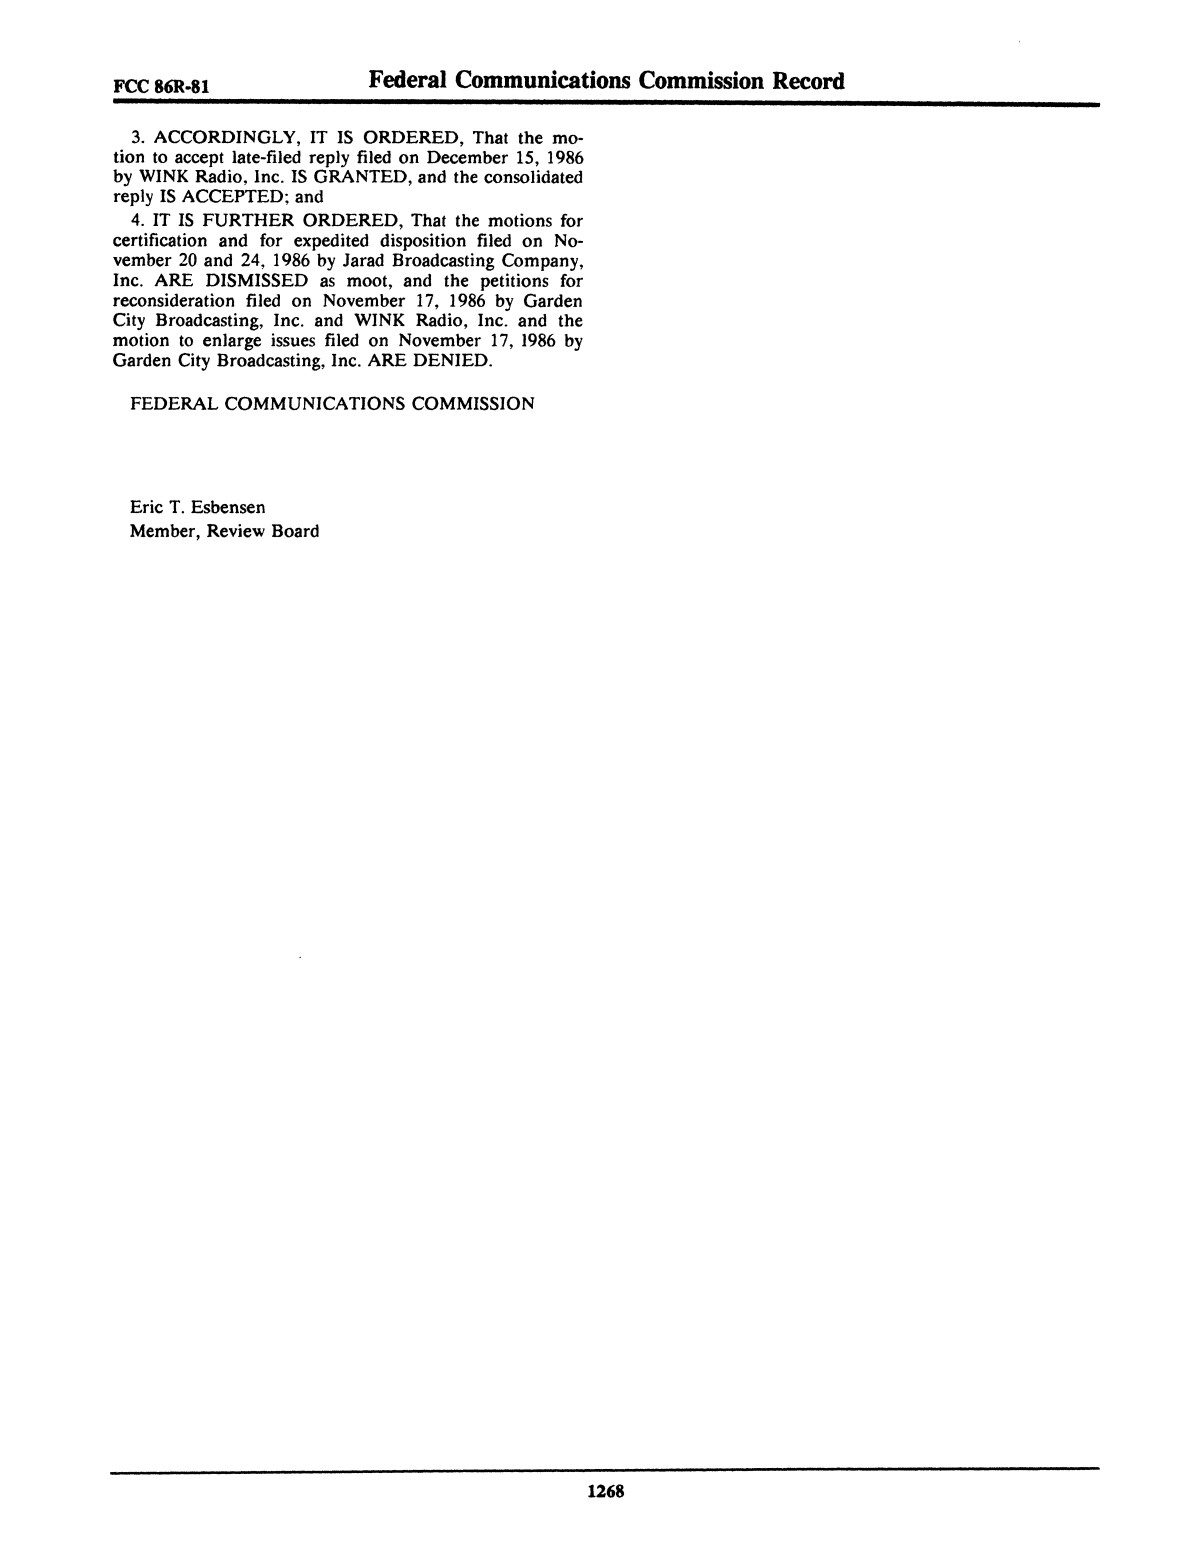 FCC Record, Volume 1, No. 7, Pages 1267 to 1368, December 22, 1986 - January 2, 1987                                                                                                      1268